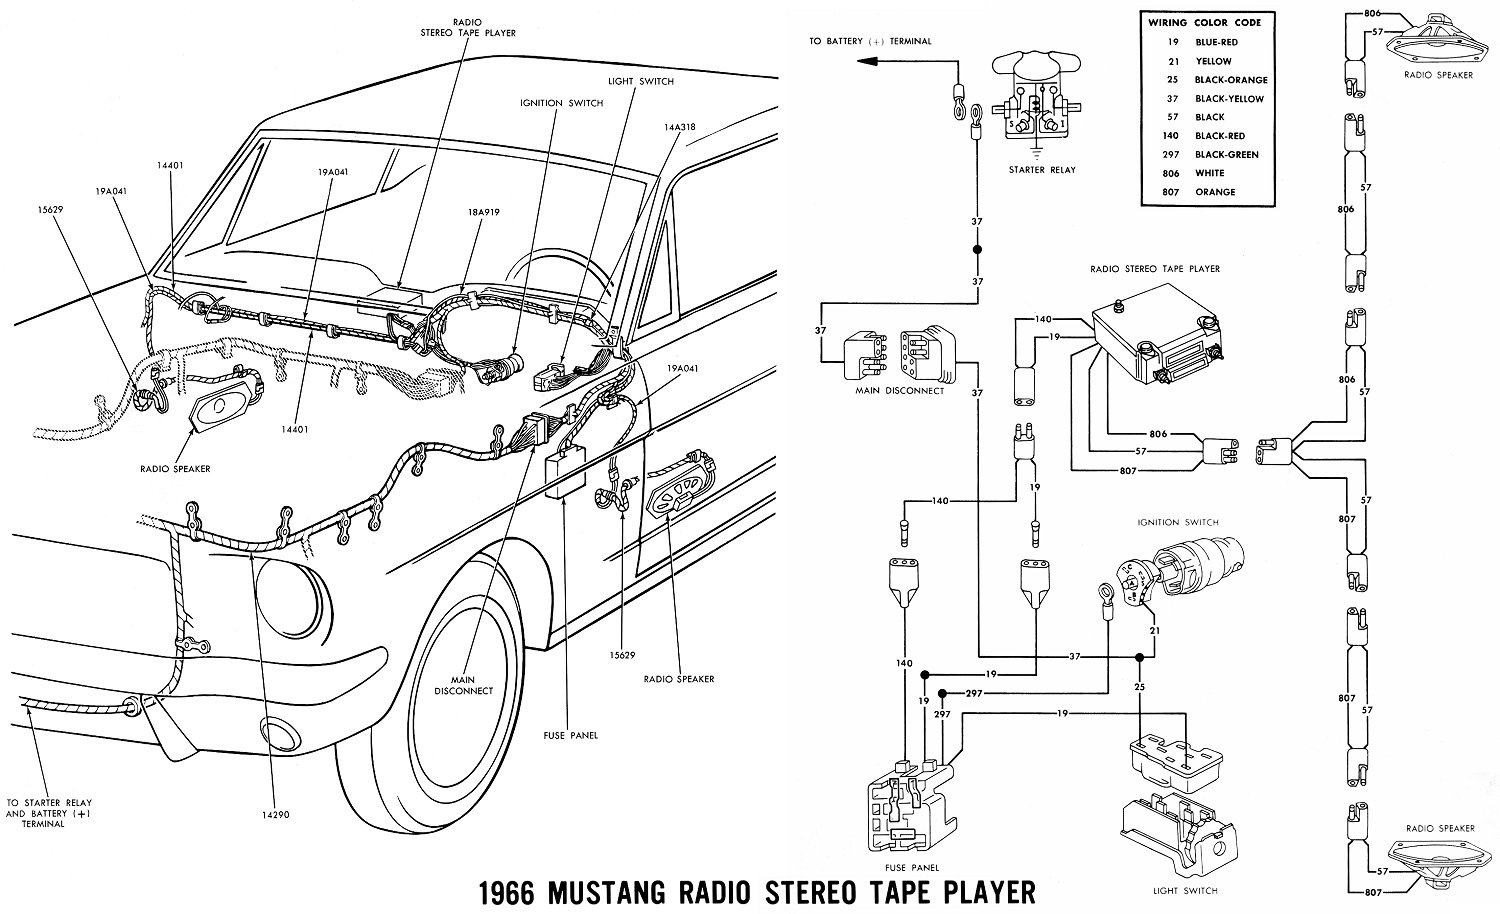 vintage mustang wiring diagrams rh midlife66 com 65 mustang dash wiring diagram 65 mustang wiring diagram manual